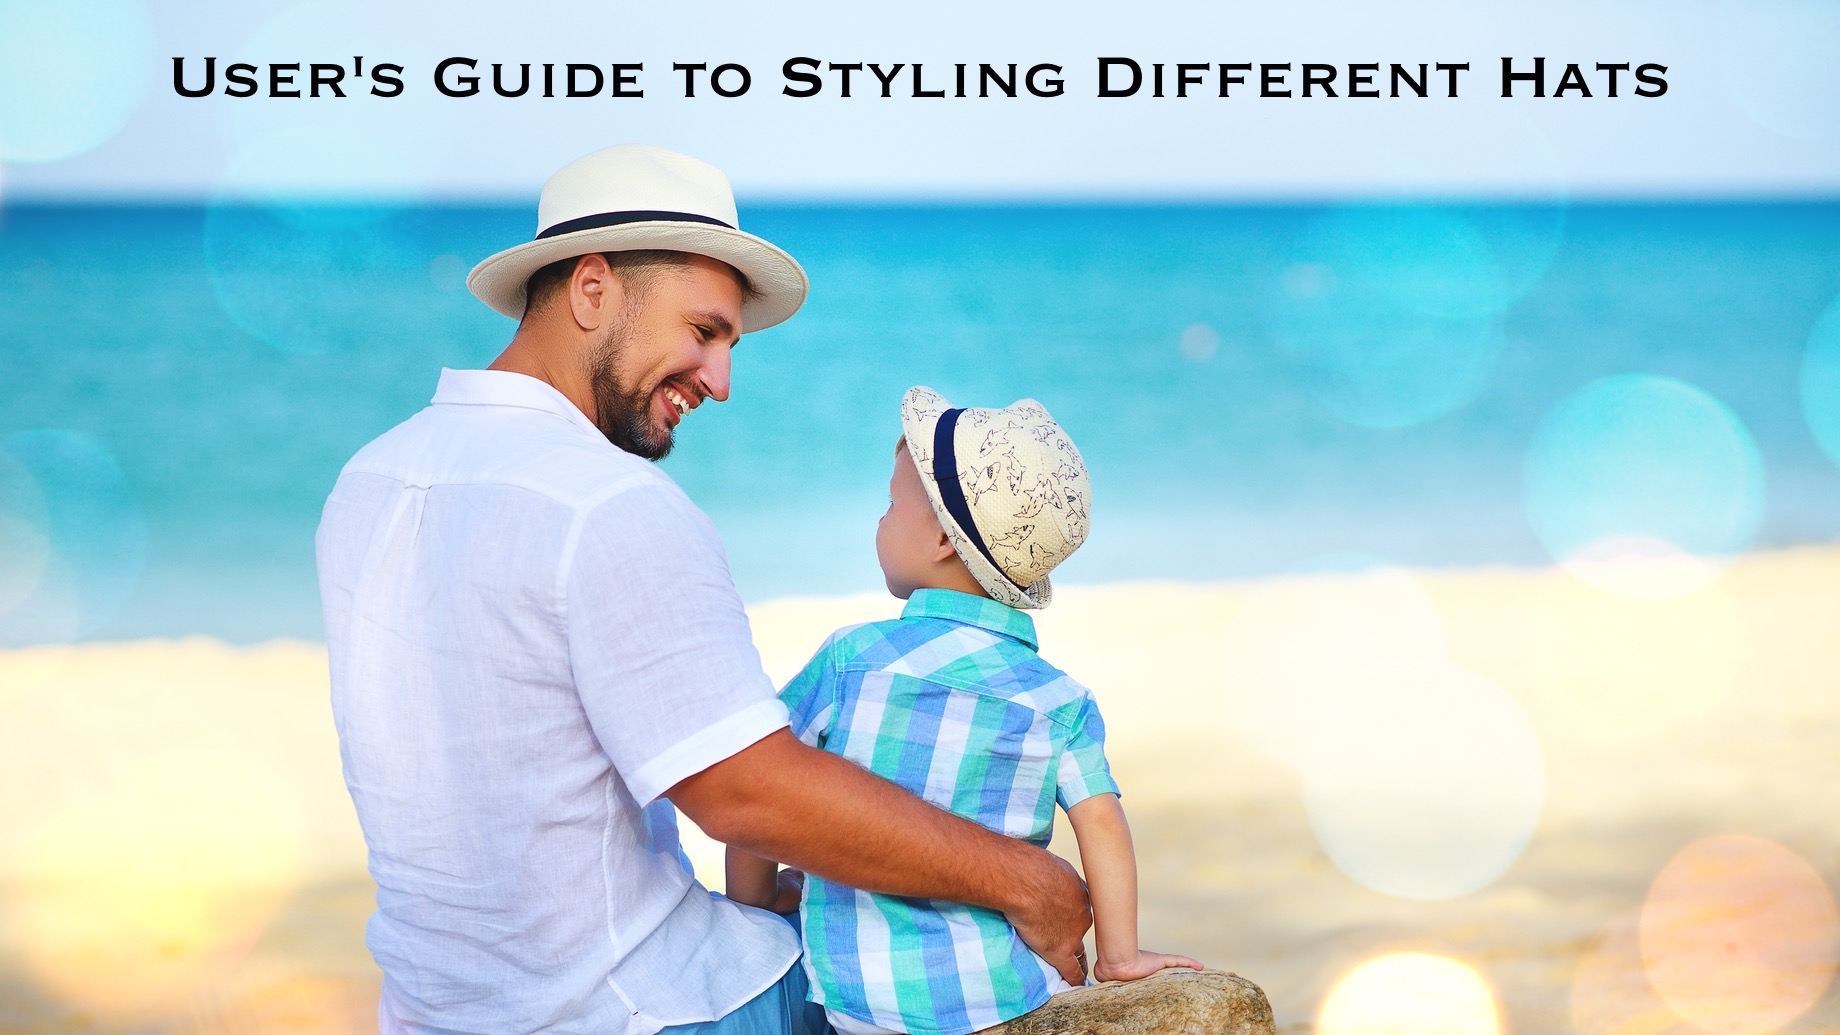 User's Guide to Styling Different Hats